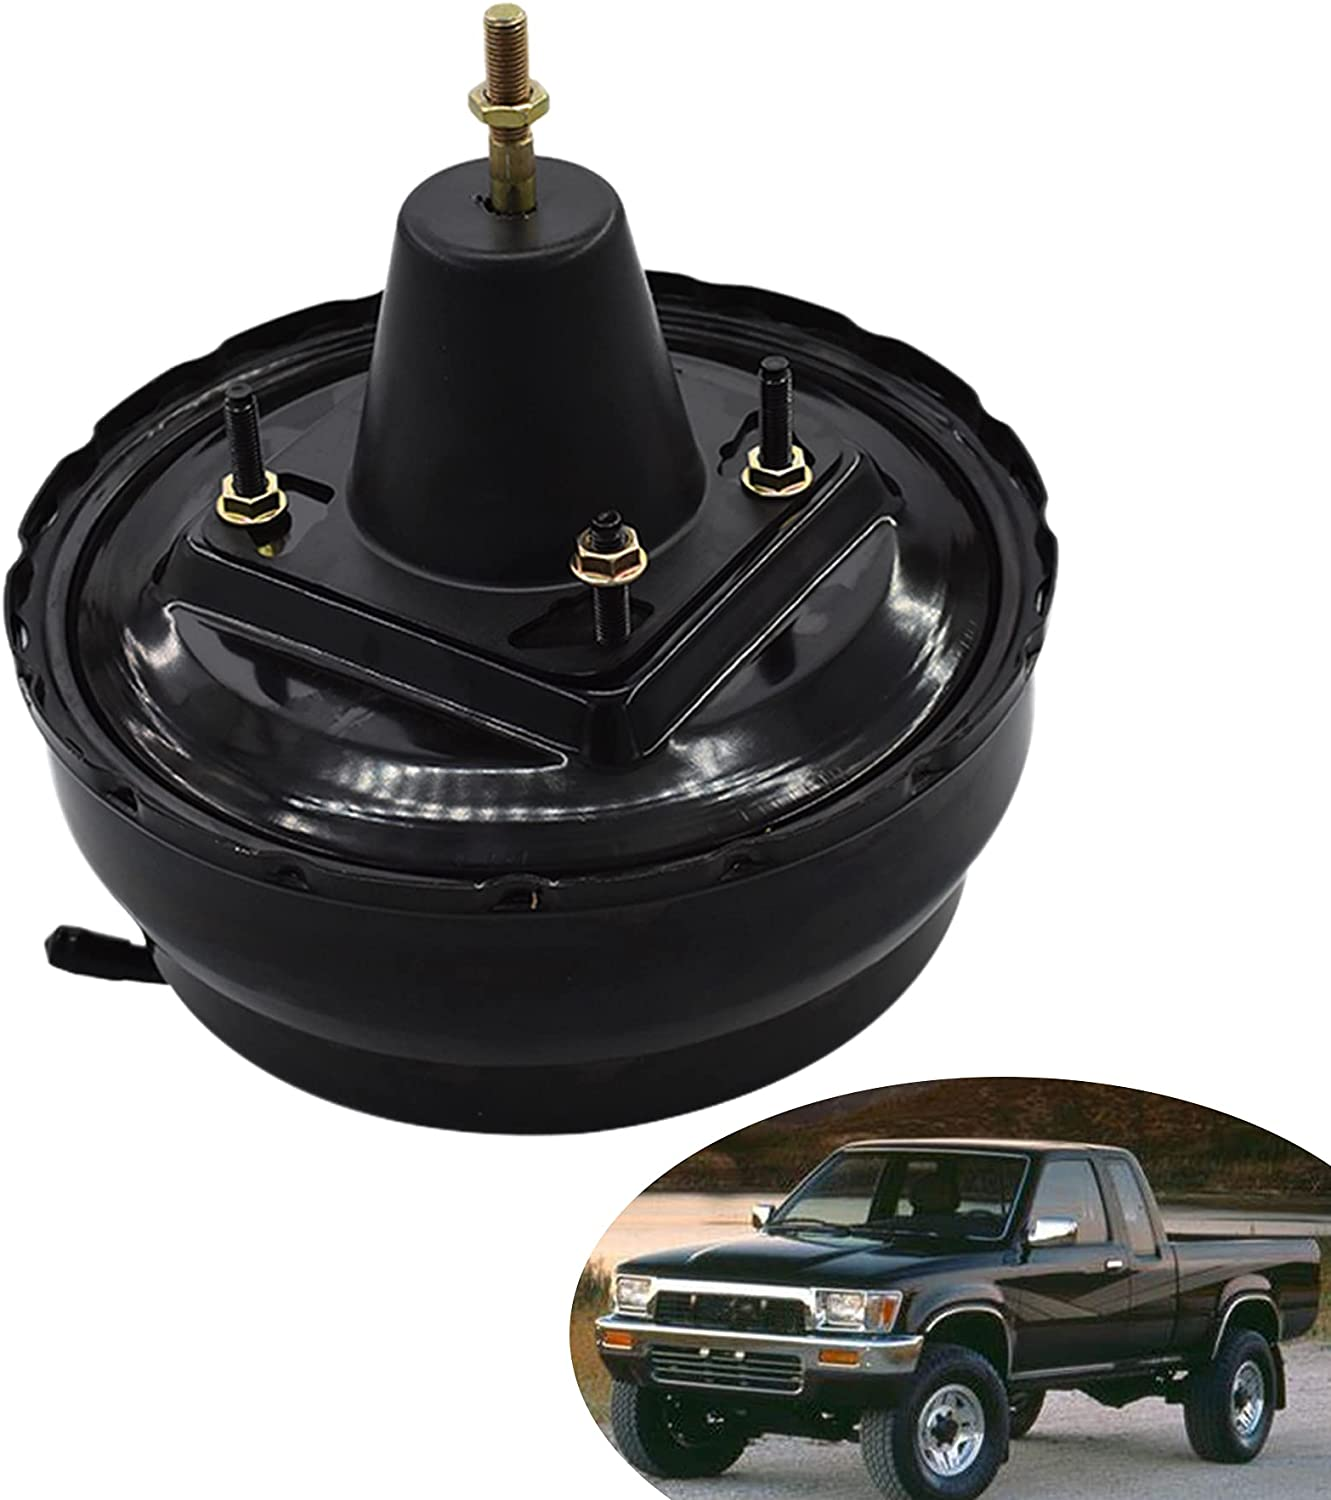 munirater Power 55% OFF Brake Booster Sale special price 53-2776 Replacement for 1989-1995